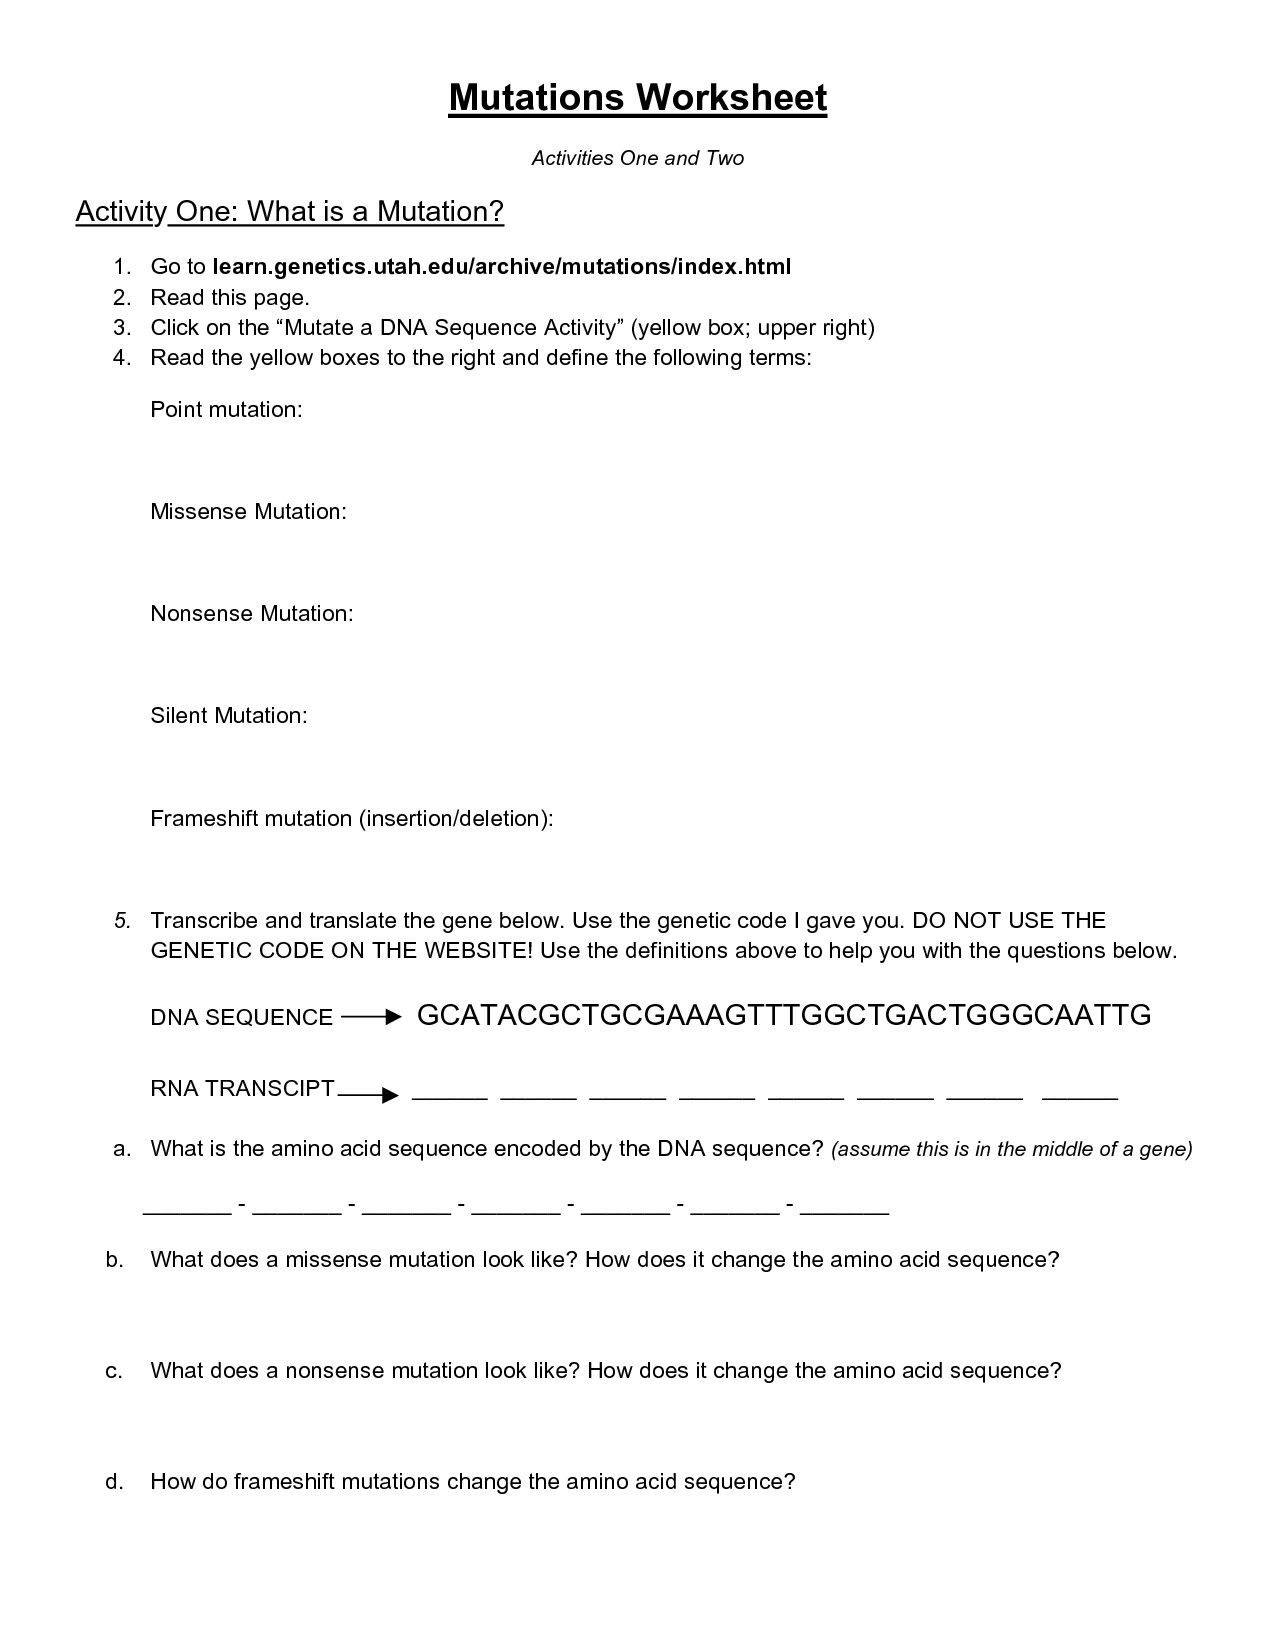 10 Best Images of Cobb DNA Mutations Practice Worksheet Answers Learning  Mutations Worksheet